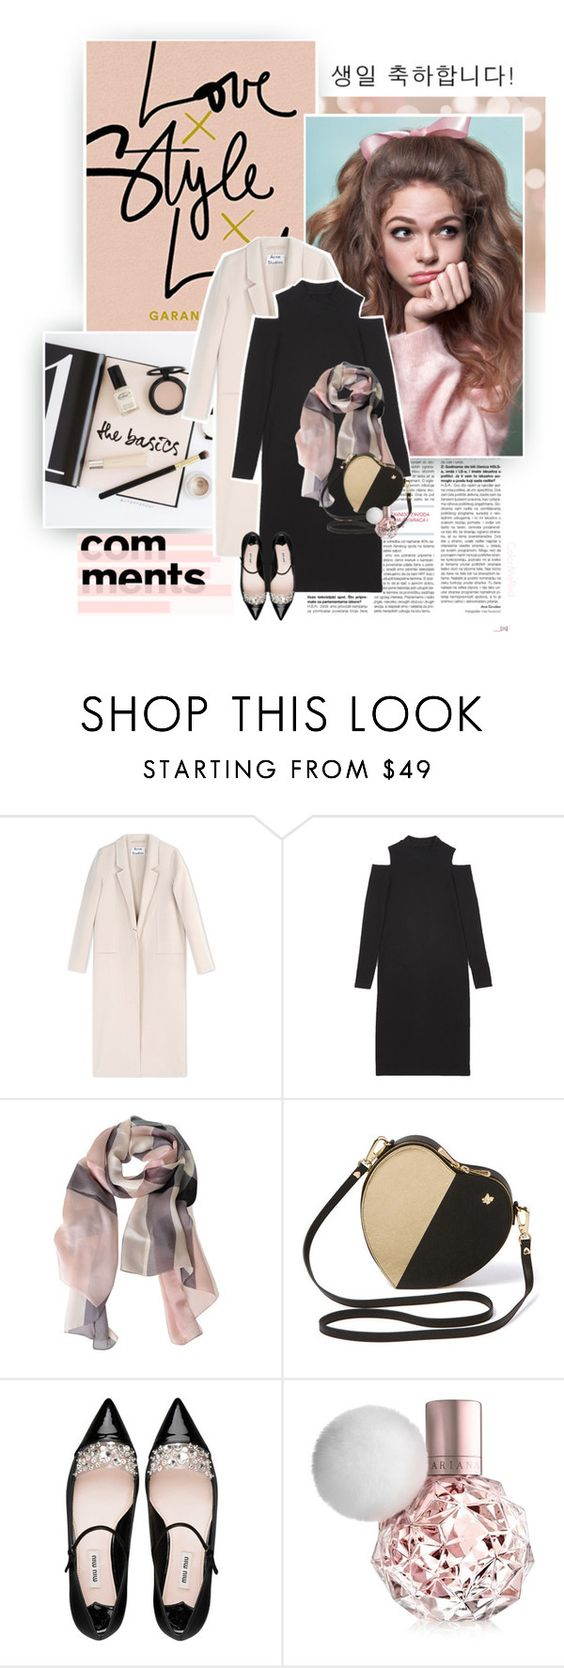 """""""Happy Birthday, Steph!"""" by color-me-red ❤ liked on Polyvore featuring Prada, Acne Studios, Burberry and Miu Miu"""